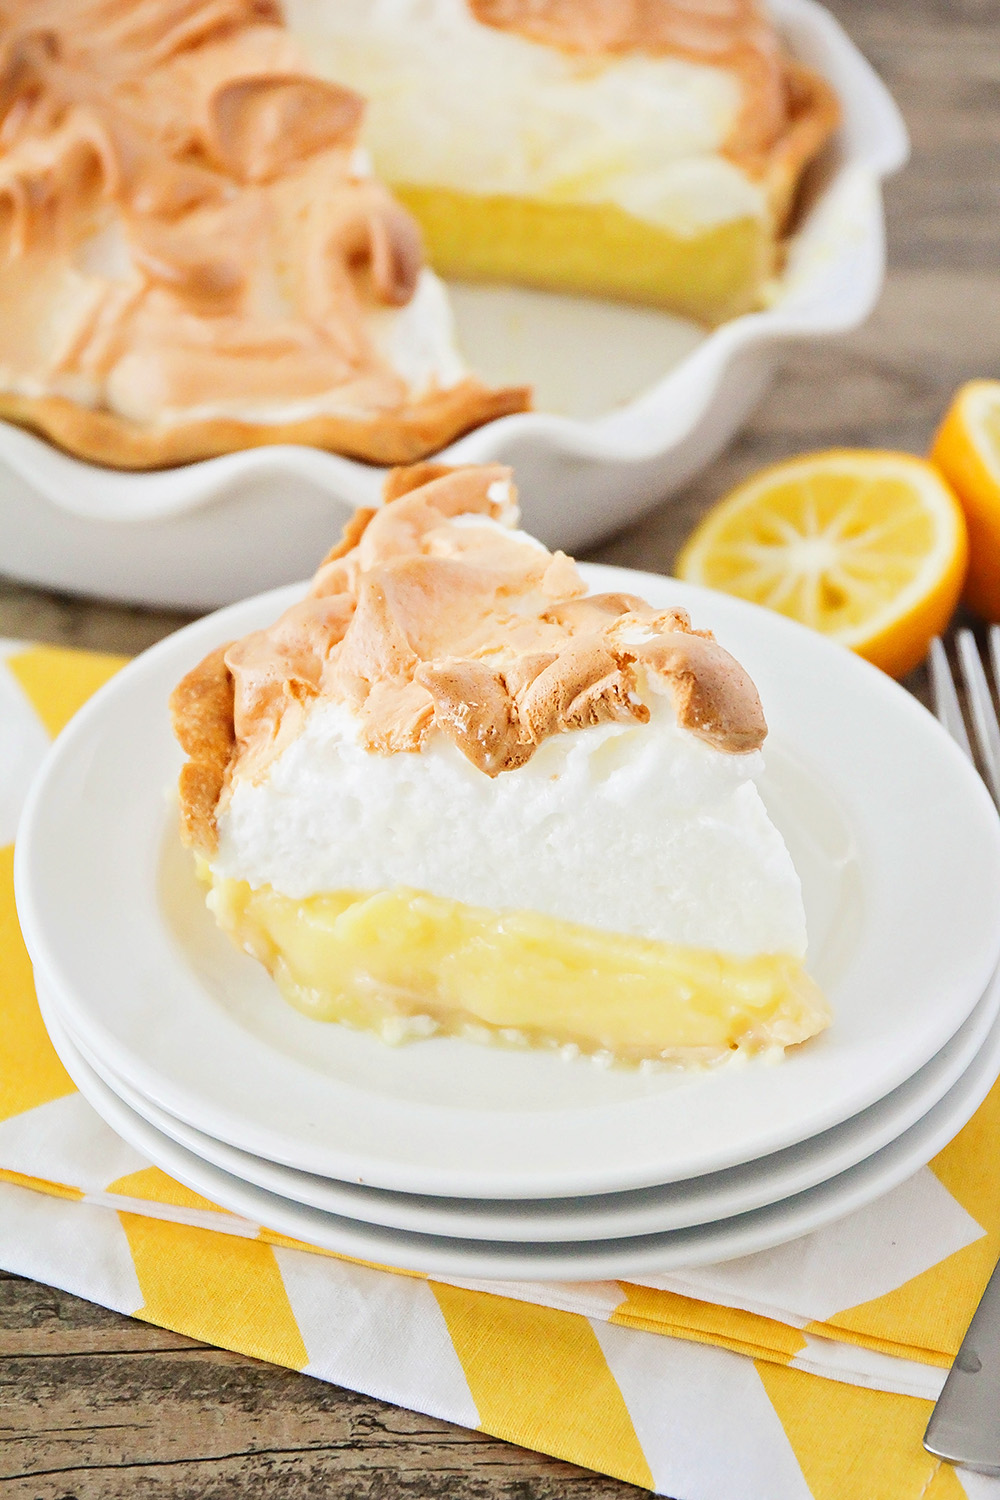 9 delicious pie recipes - from adorable berry hand pies to luscious lemon meringue pie, plus a killer homemade pie crust recipe!